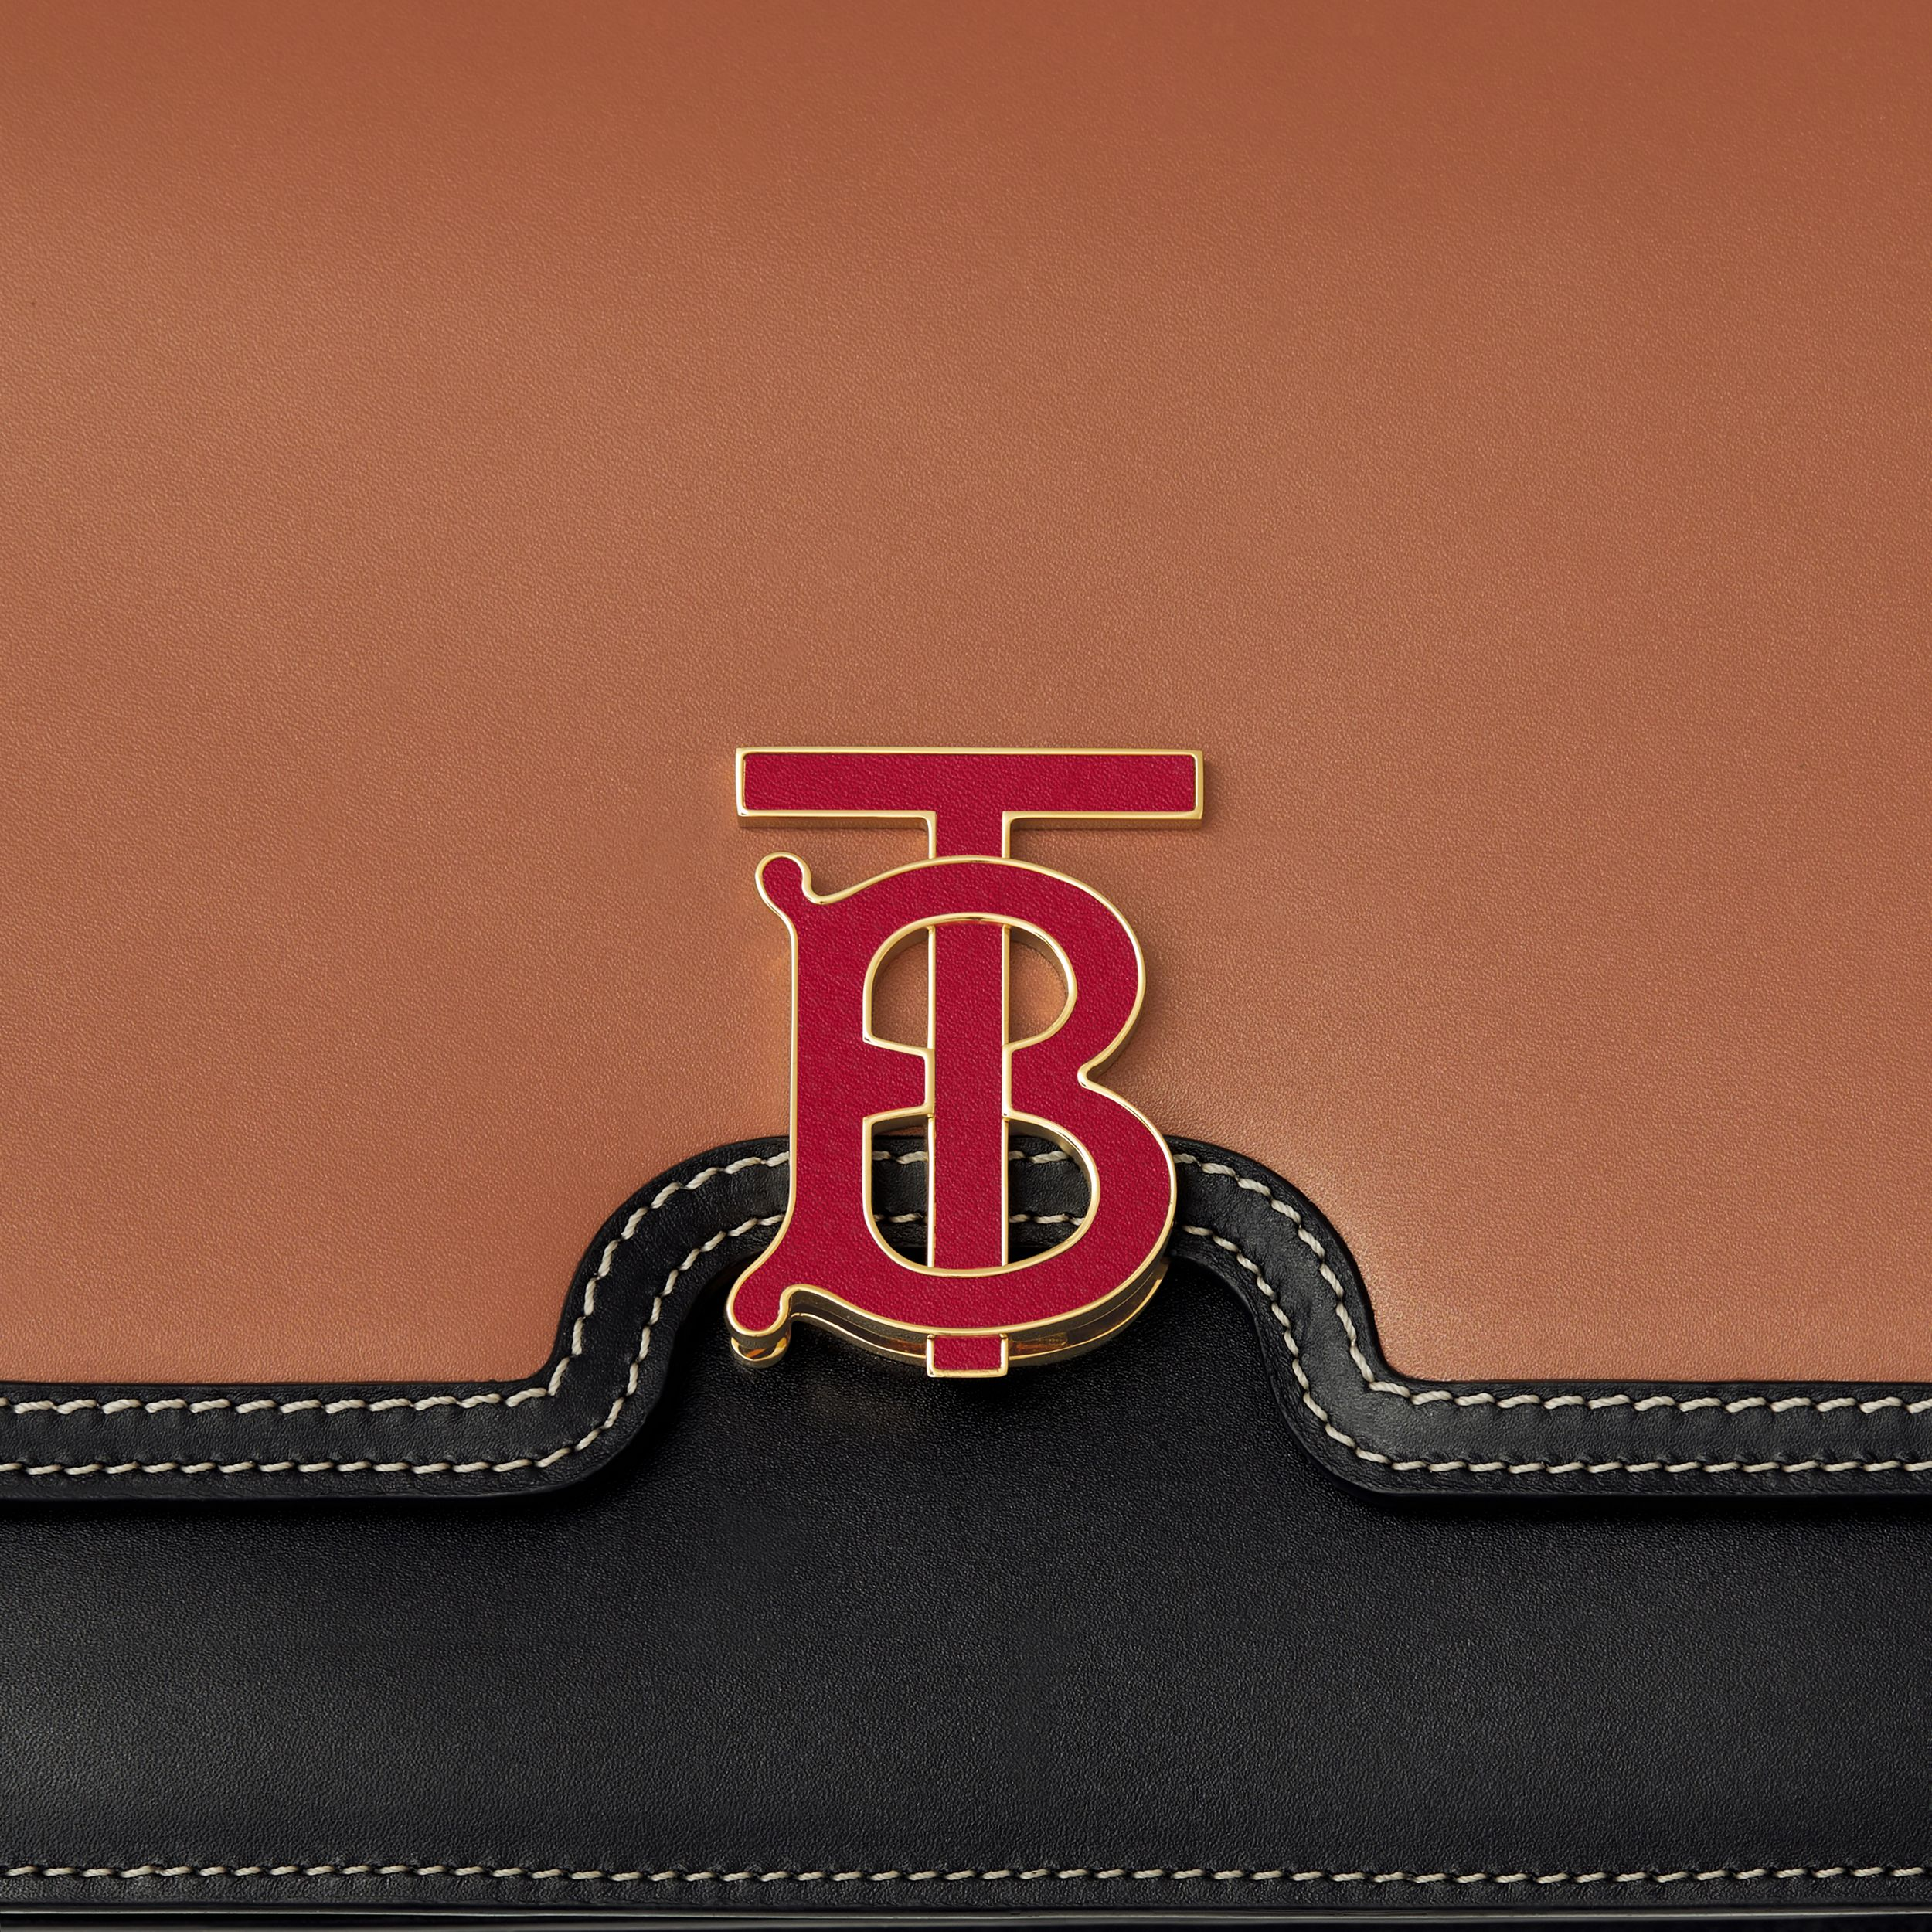 Medium Two-tone Leather TB Bag in Malt Brown/black | Burberry - 2